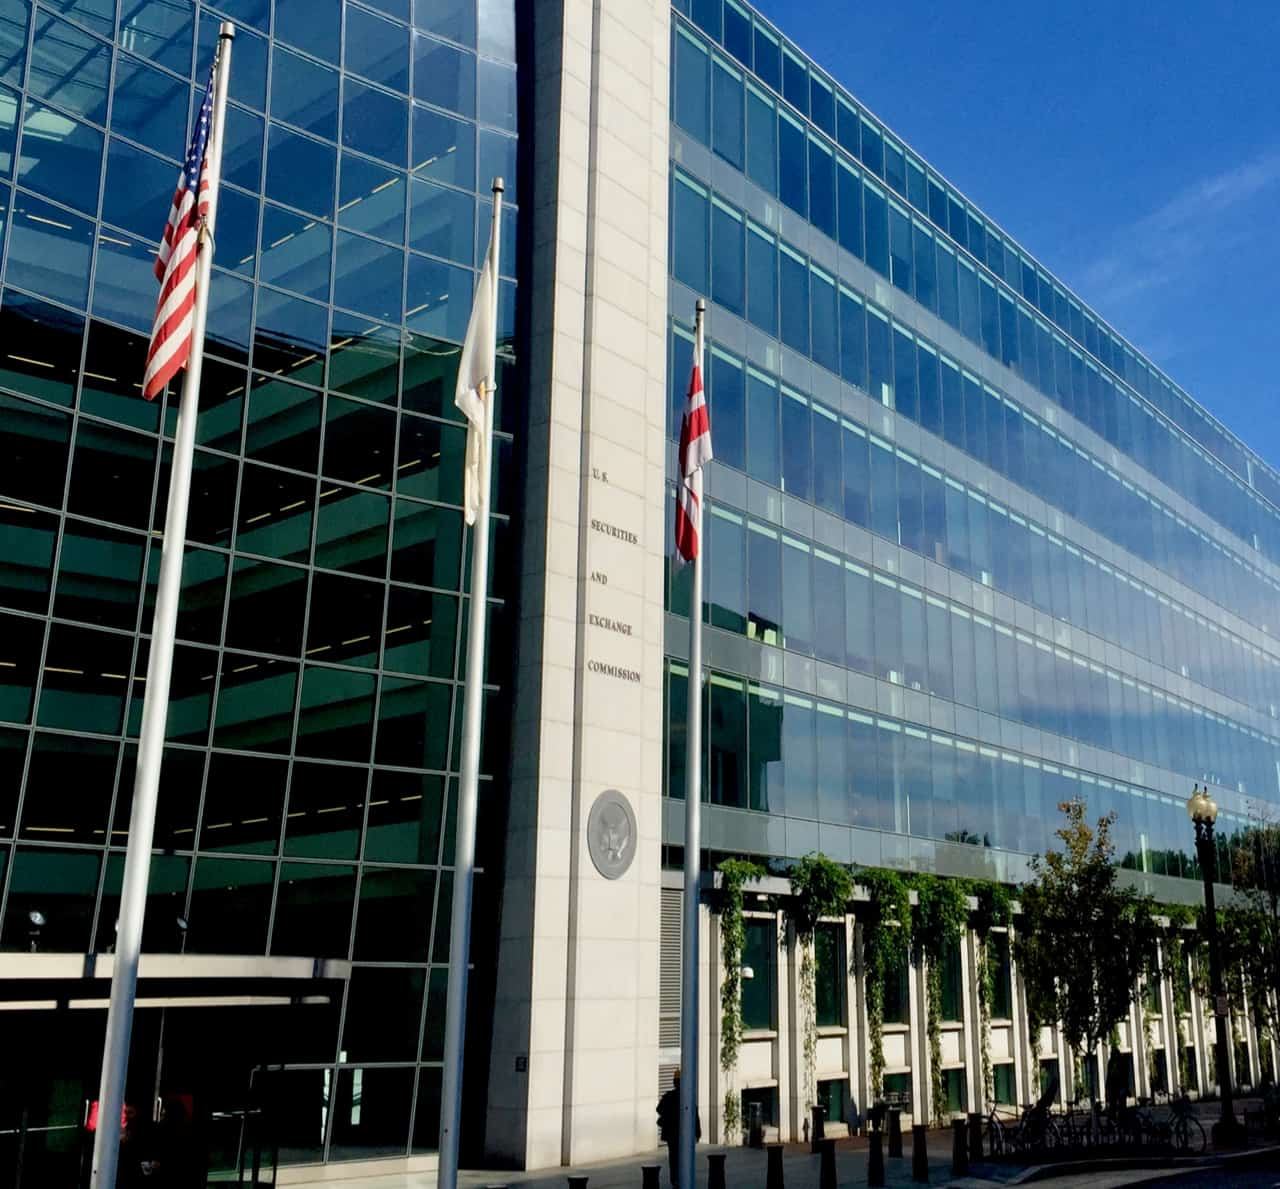 SEC Small Business Capital Formation Advisory Committee Posts Agenda for Upcoming Meeting